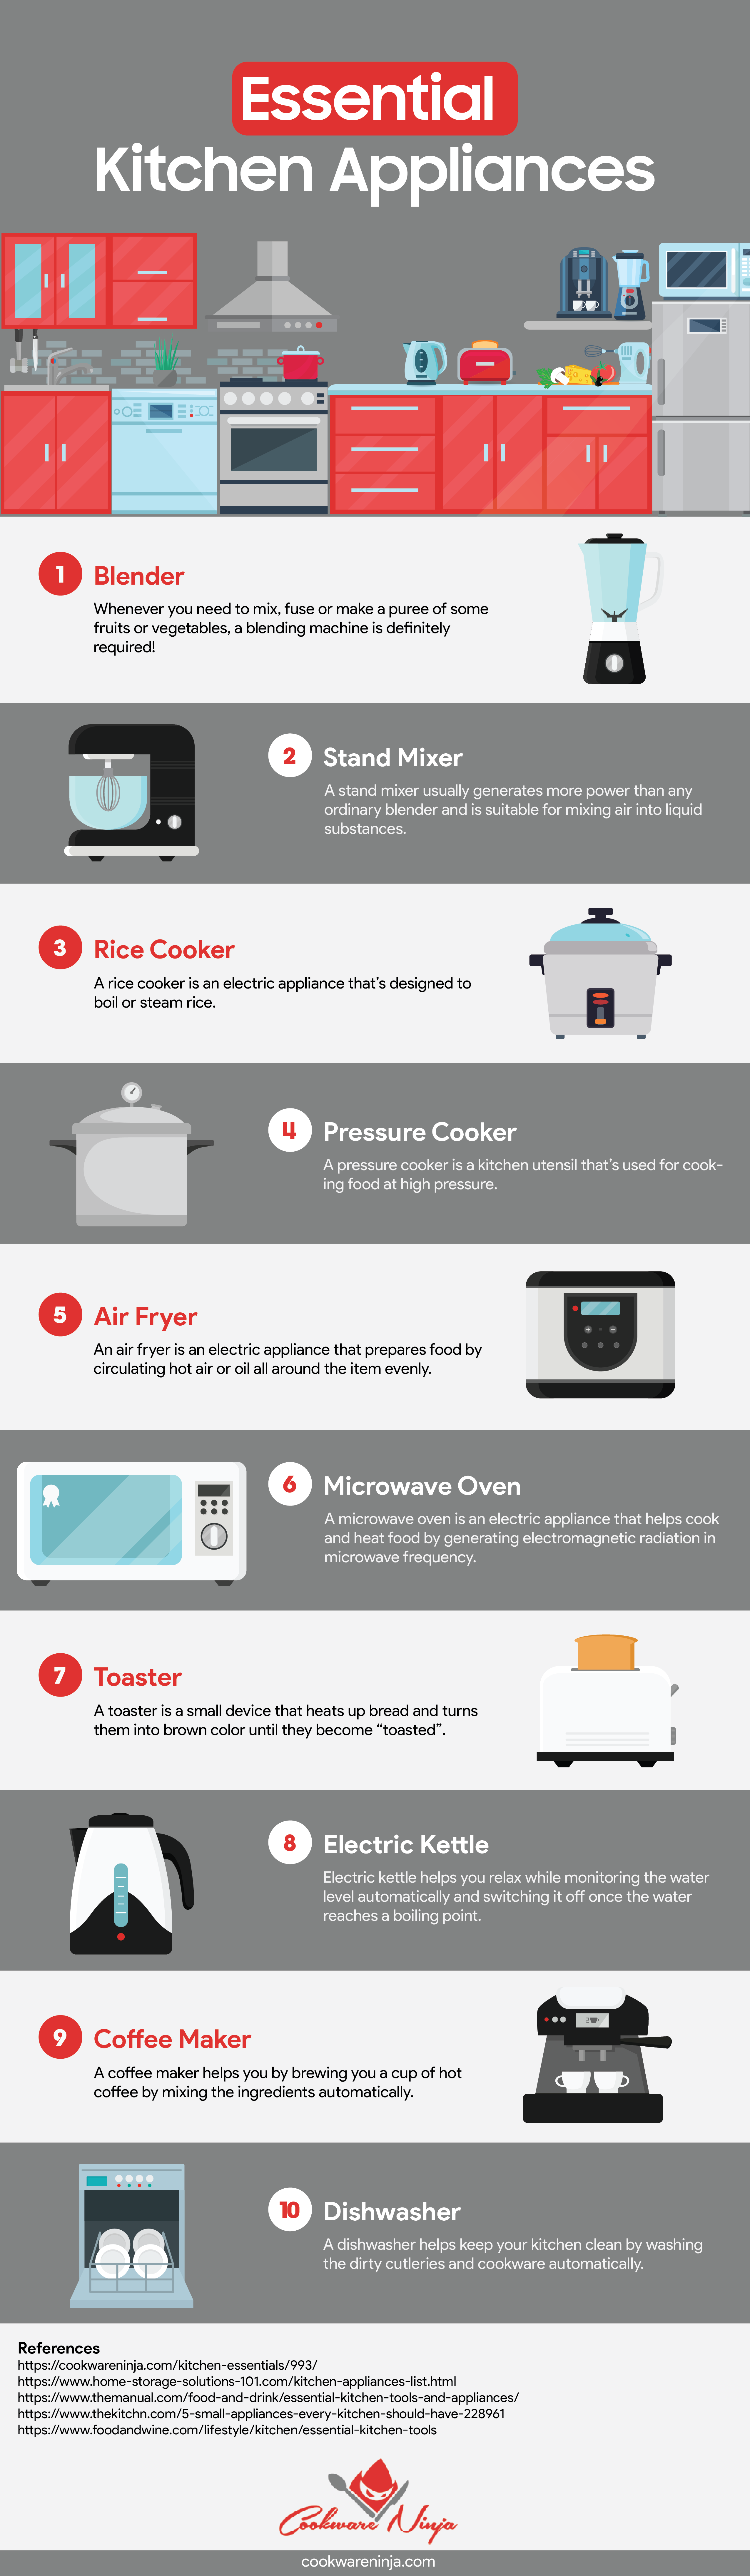 Essential Kitchen Appliances Every Chef Should Have